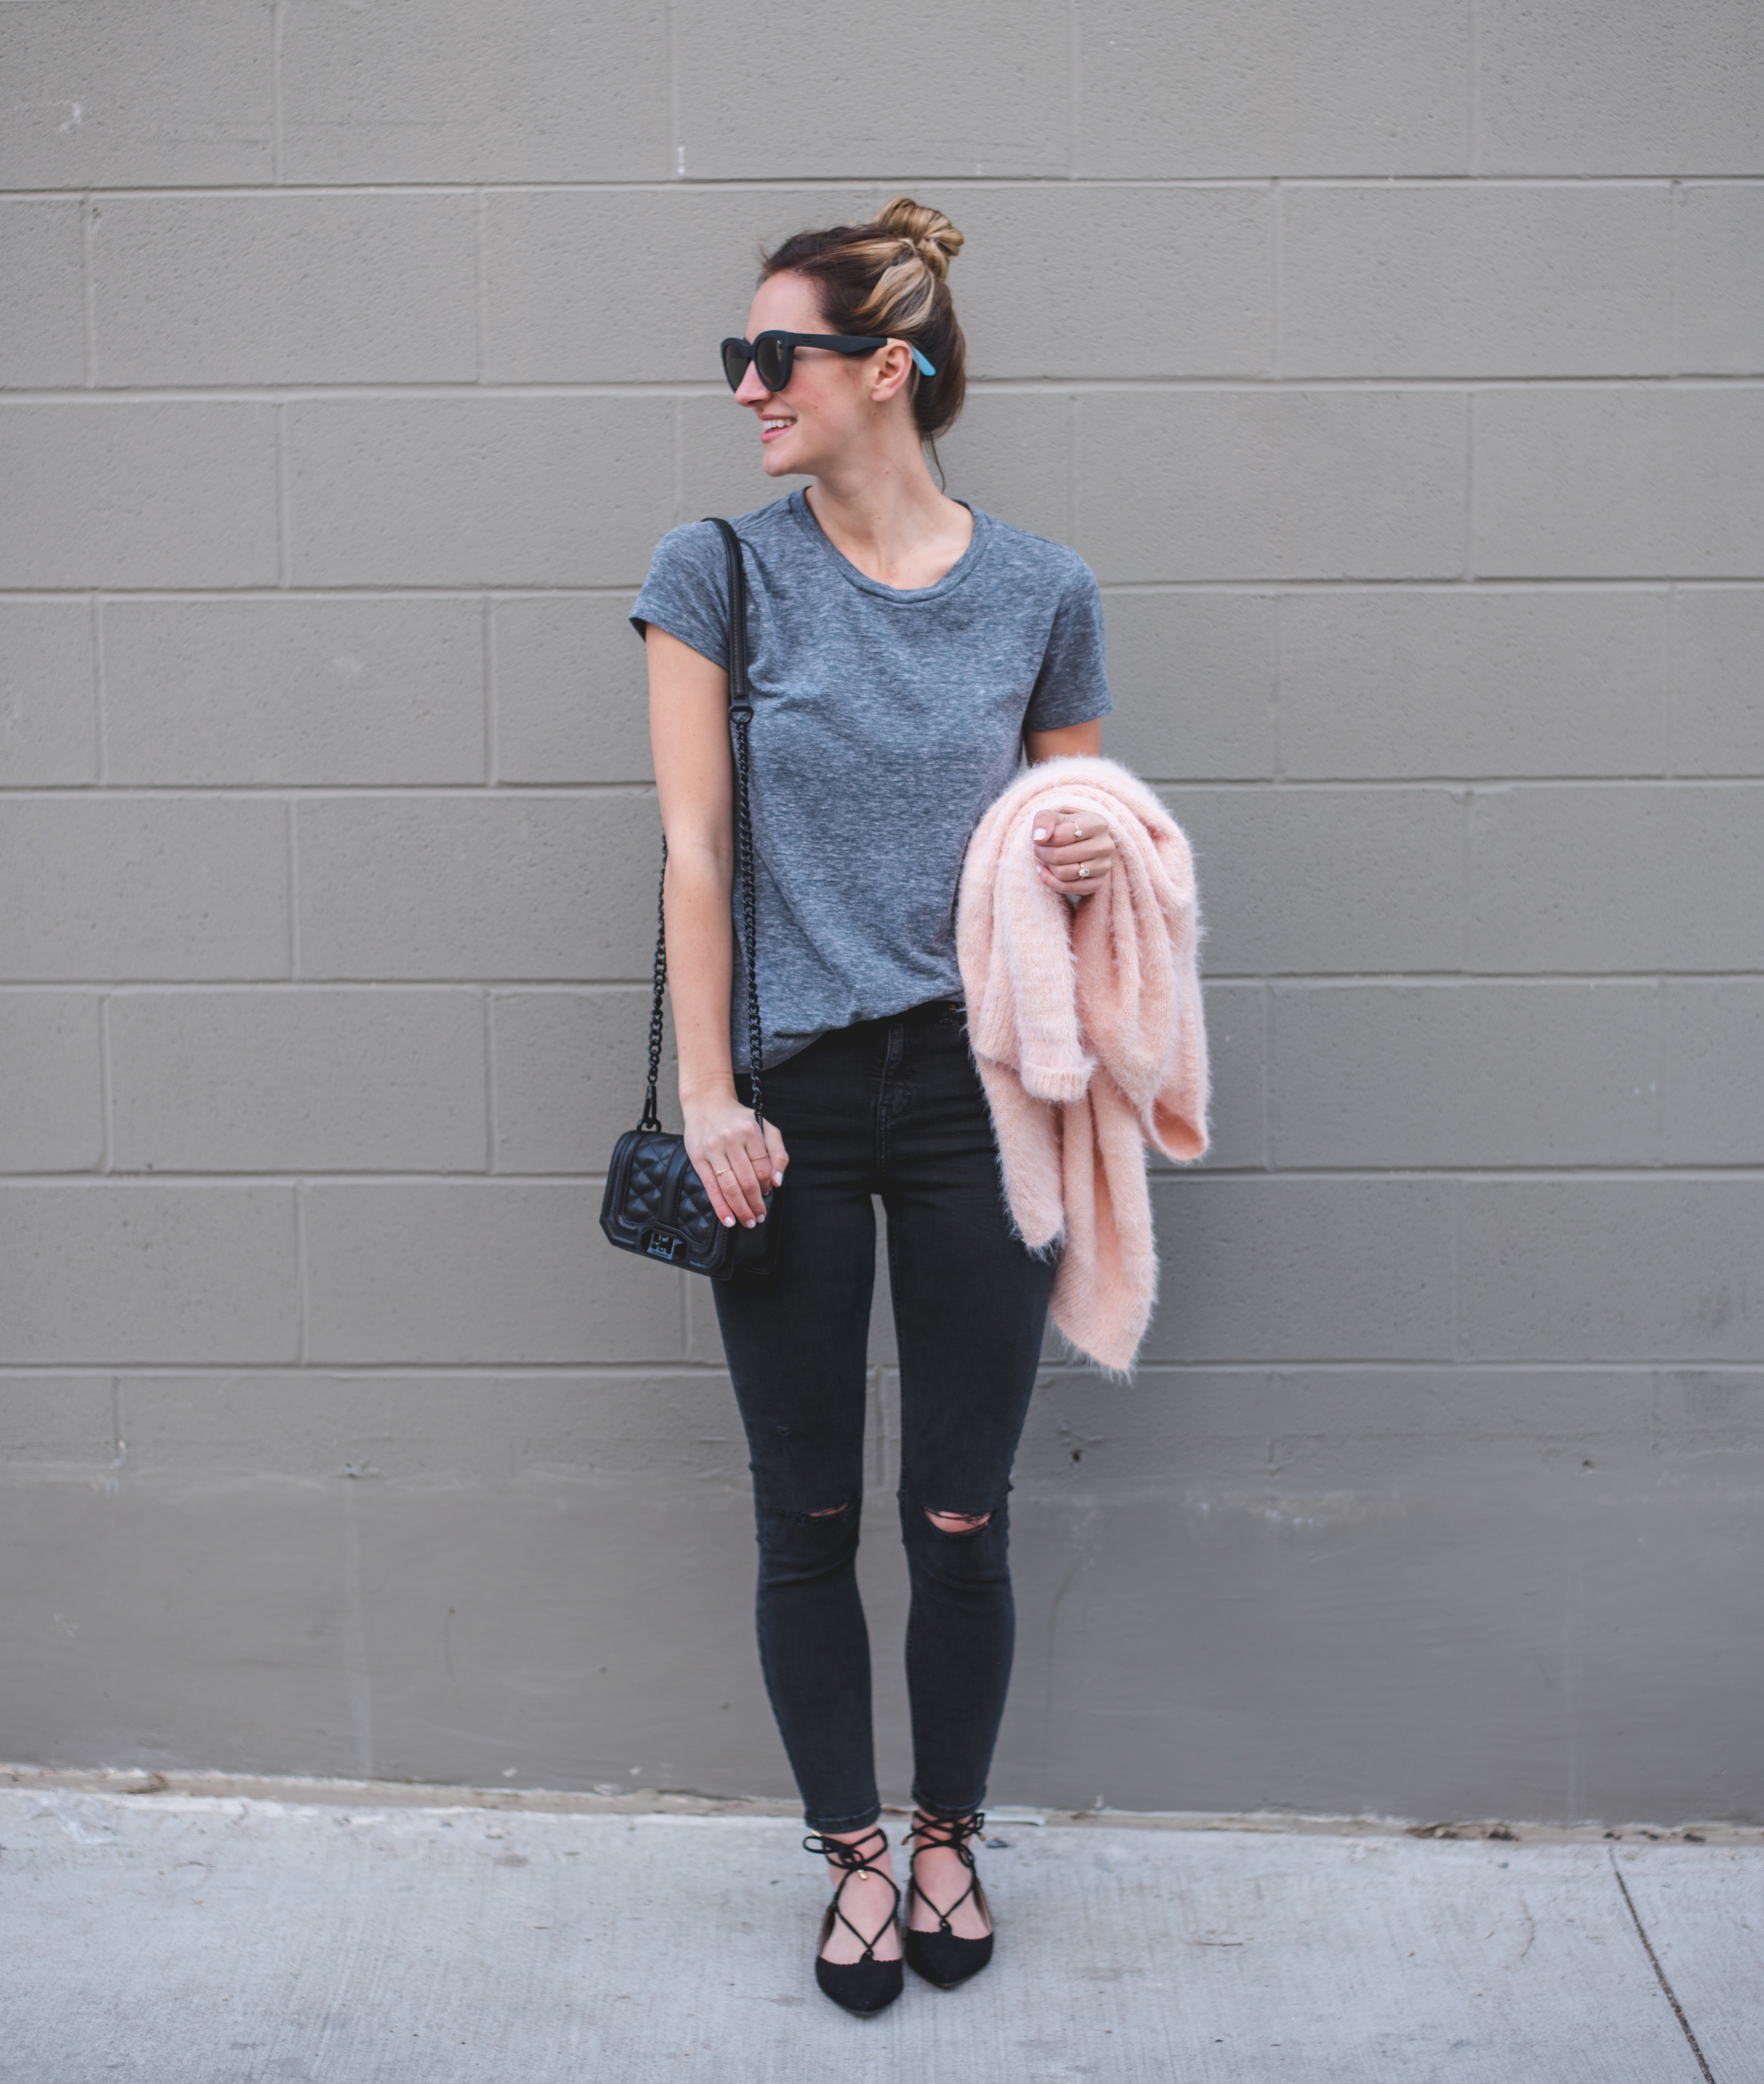 livvyland-blog-olivia-watson-austin-texas-fashion-blogger-topshop-distressed-black-skinny-jeans-lace-up-flats-blush-pink-cardigan-rebecca-minkoff-mini-love-crossbody-bag-gunmetal-2